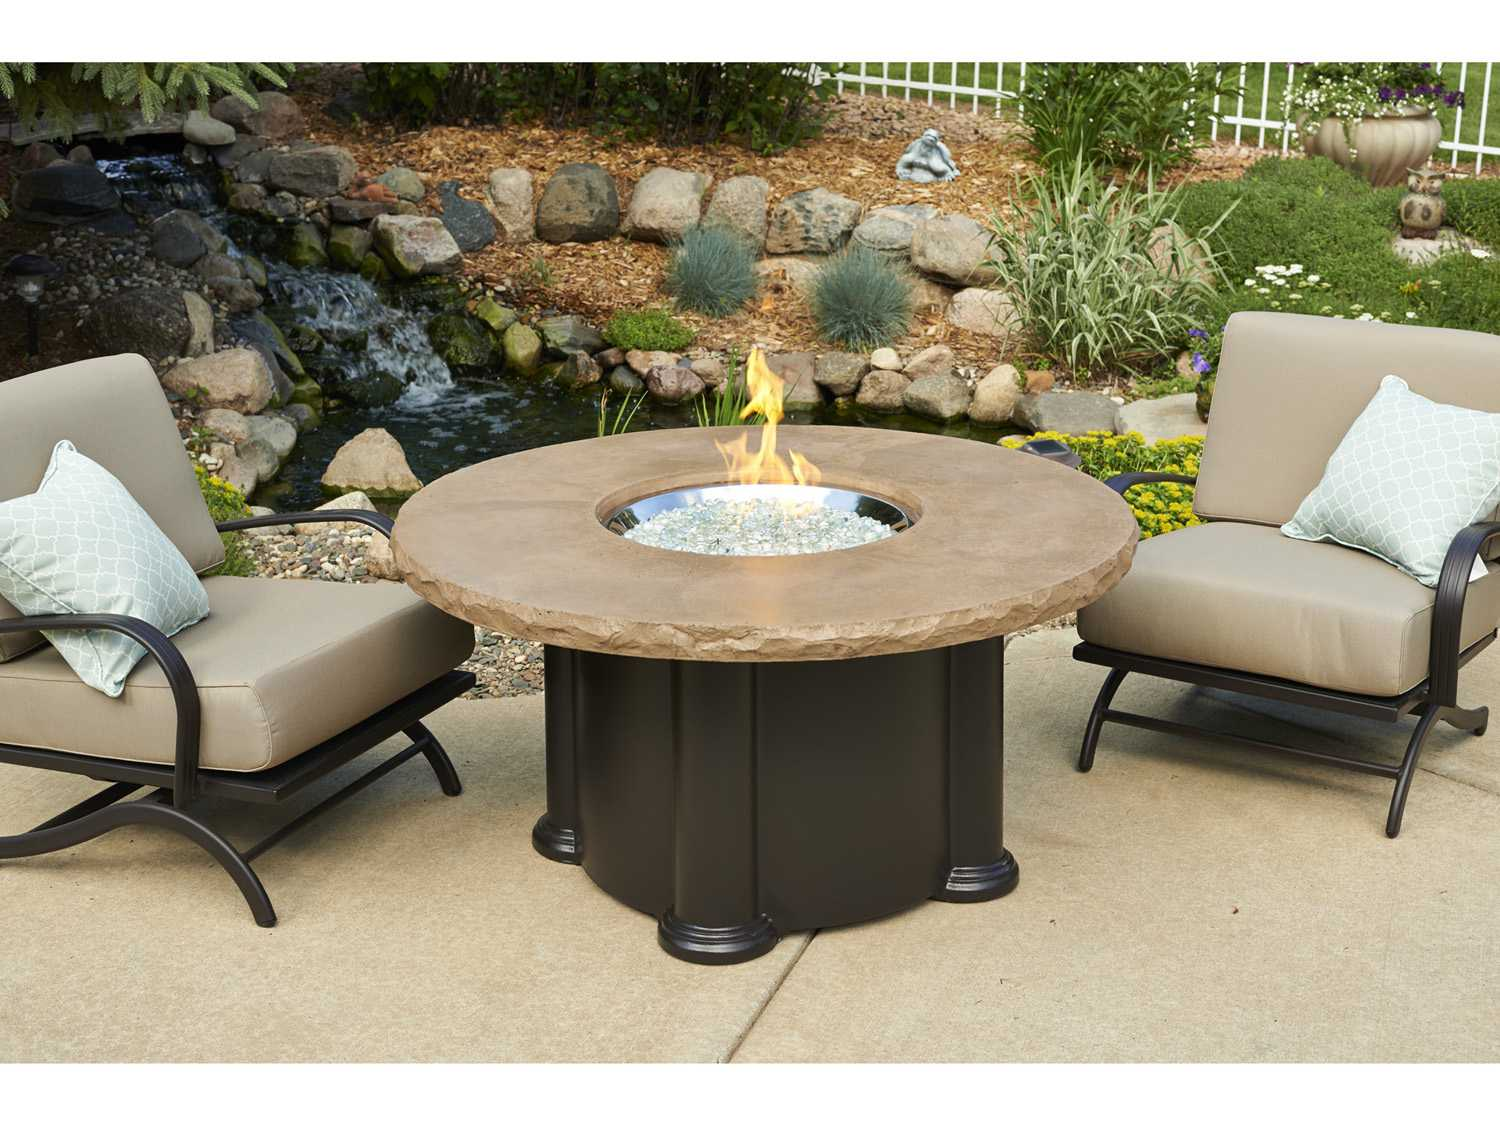 Outdoor Greatroom Colonial Fiberglass 48 Round Fire Pit Coffee Table With Mocha Top Ogcolonial48mk